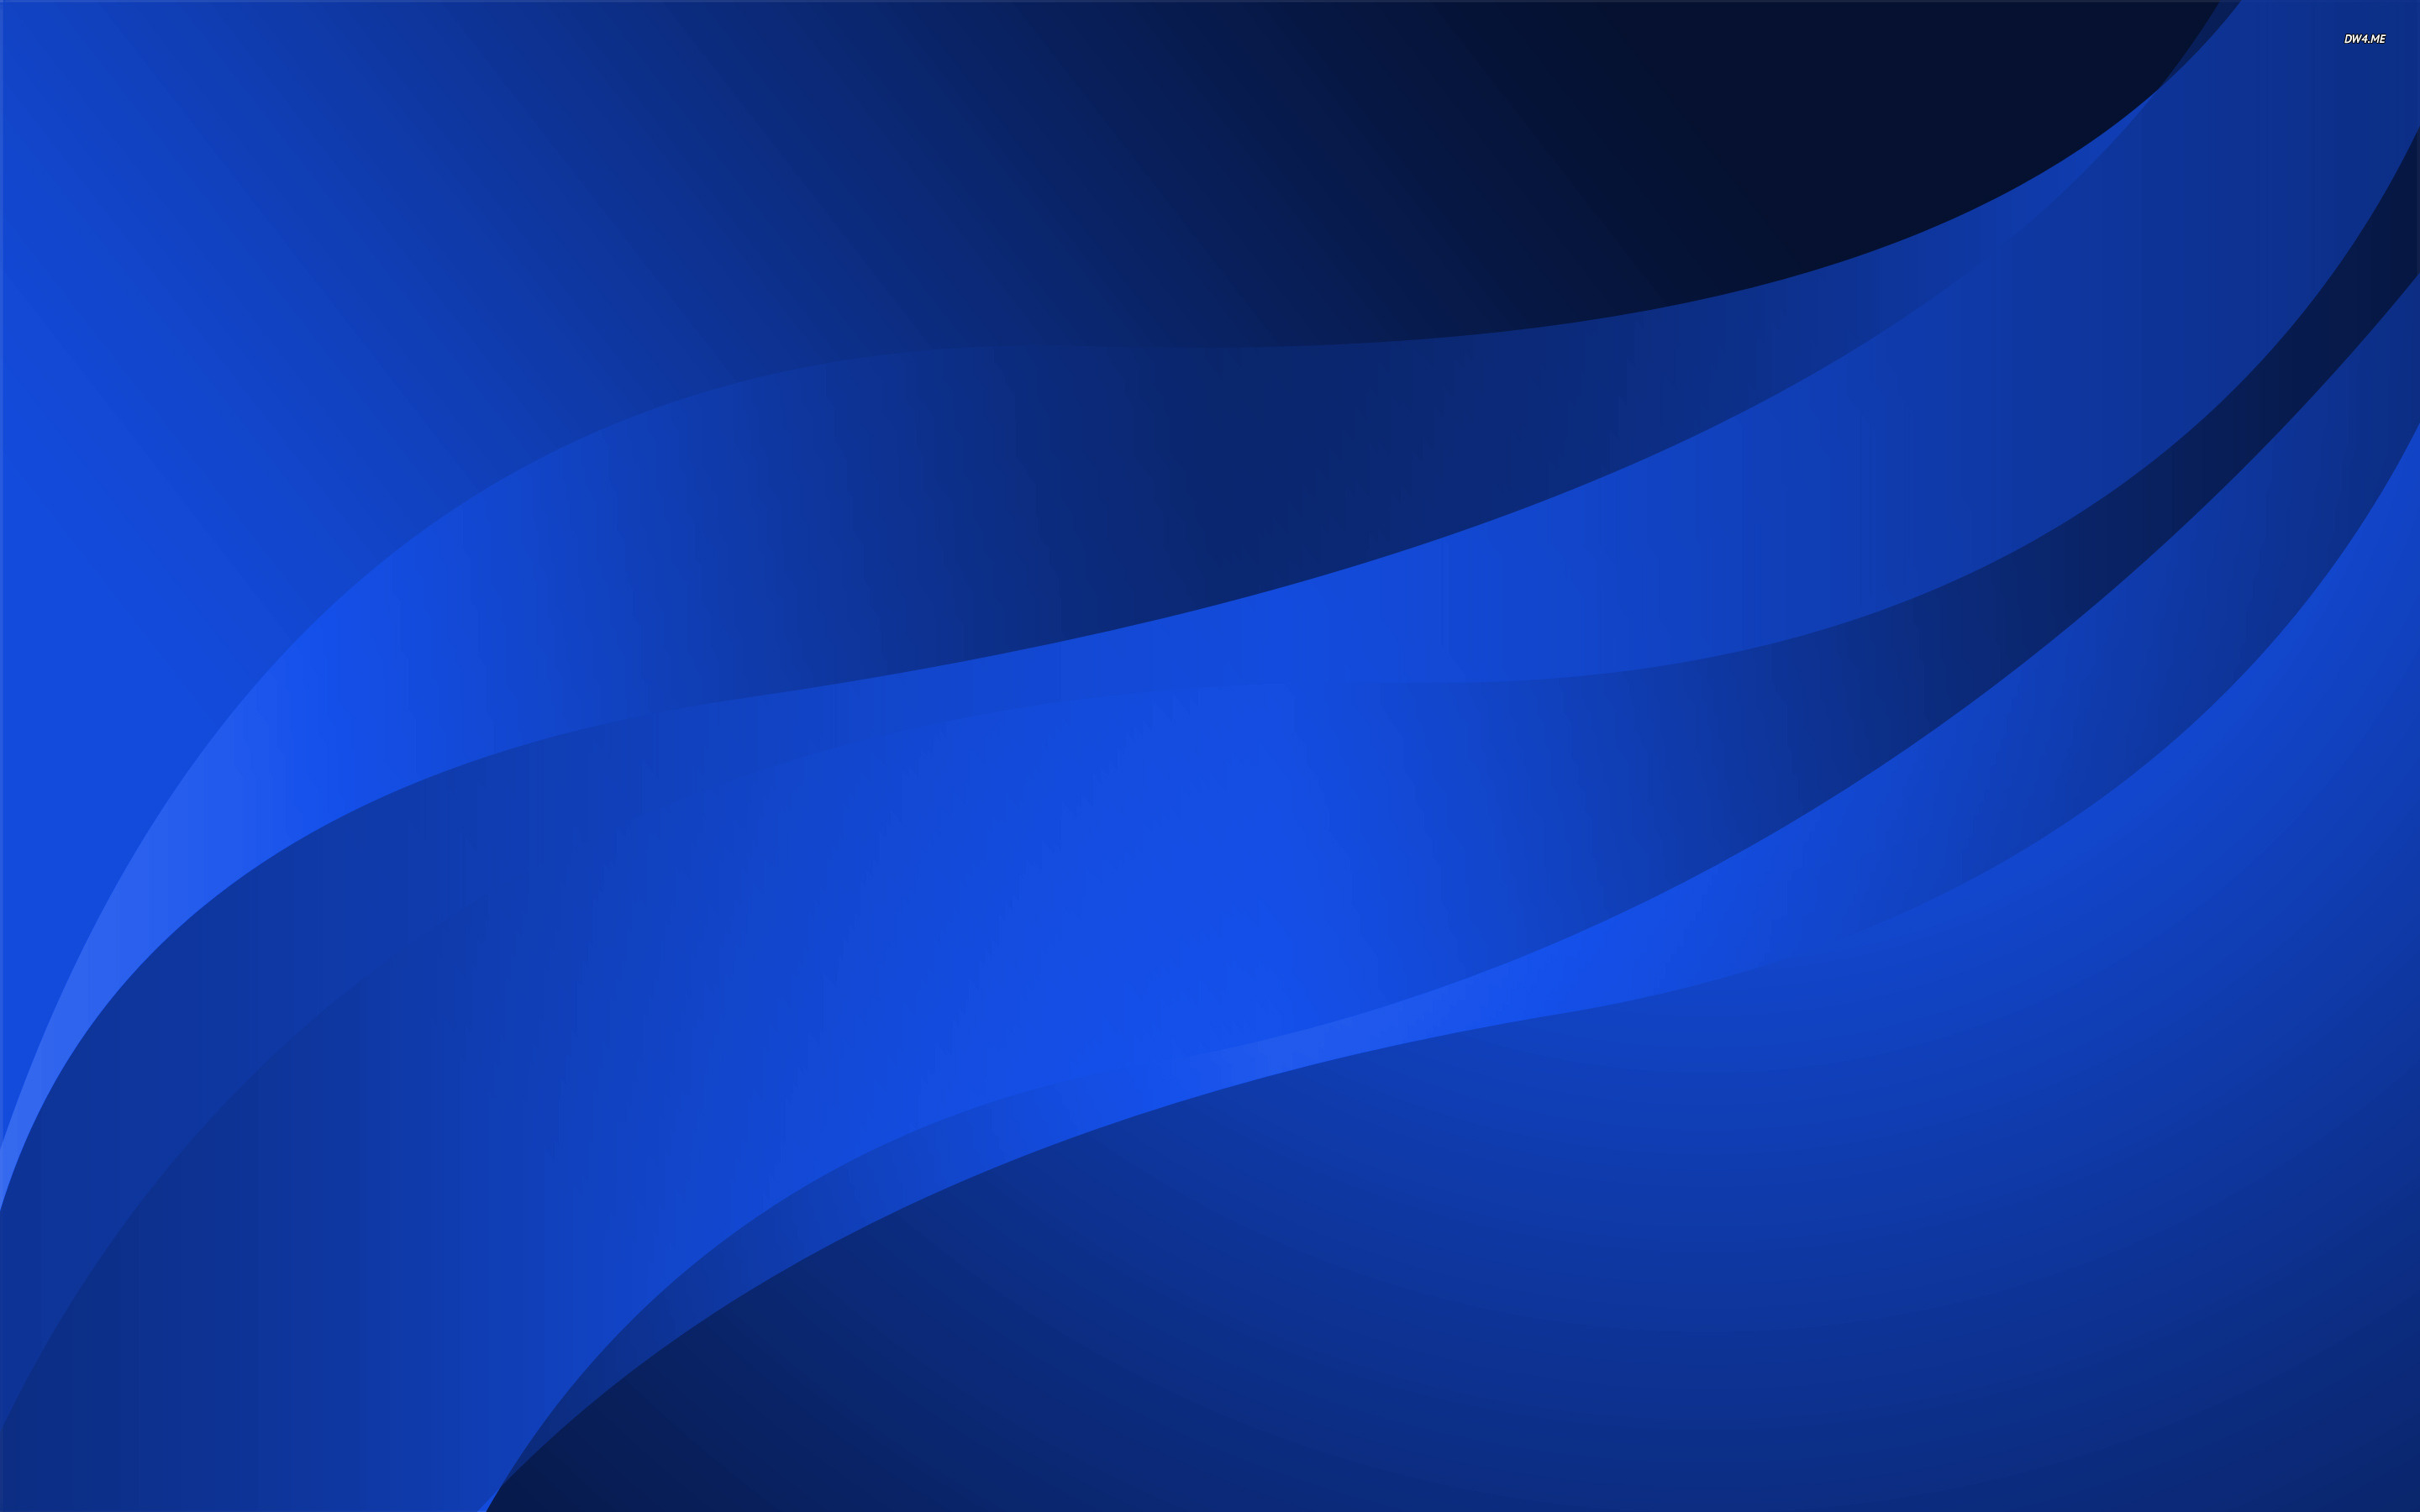 Blue Background #50 HD Vector #9798 Wallpaper | Forrestkyle Gallery